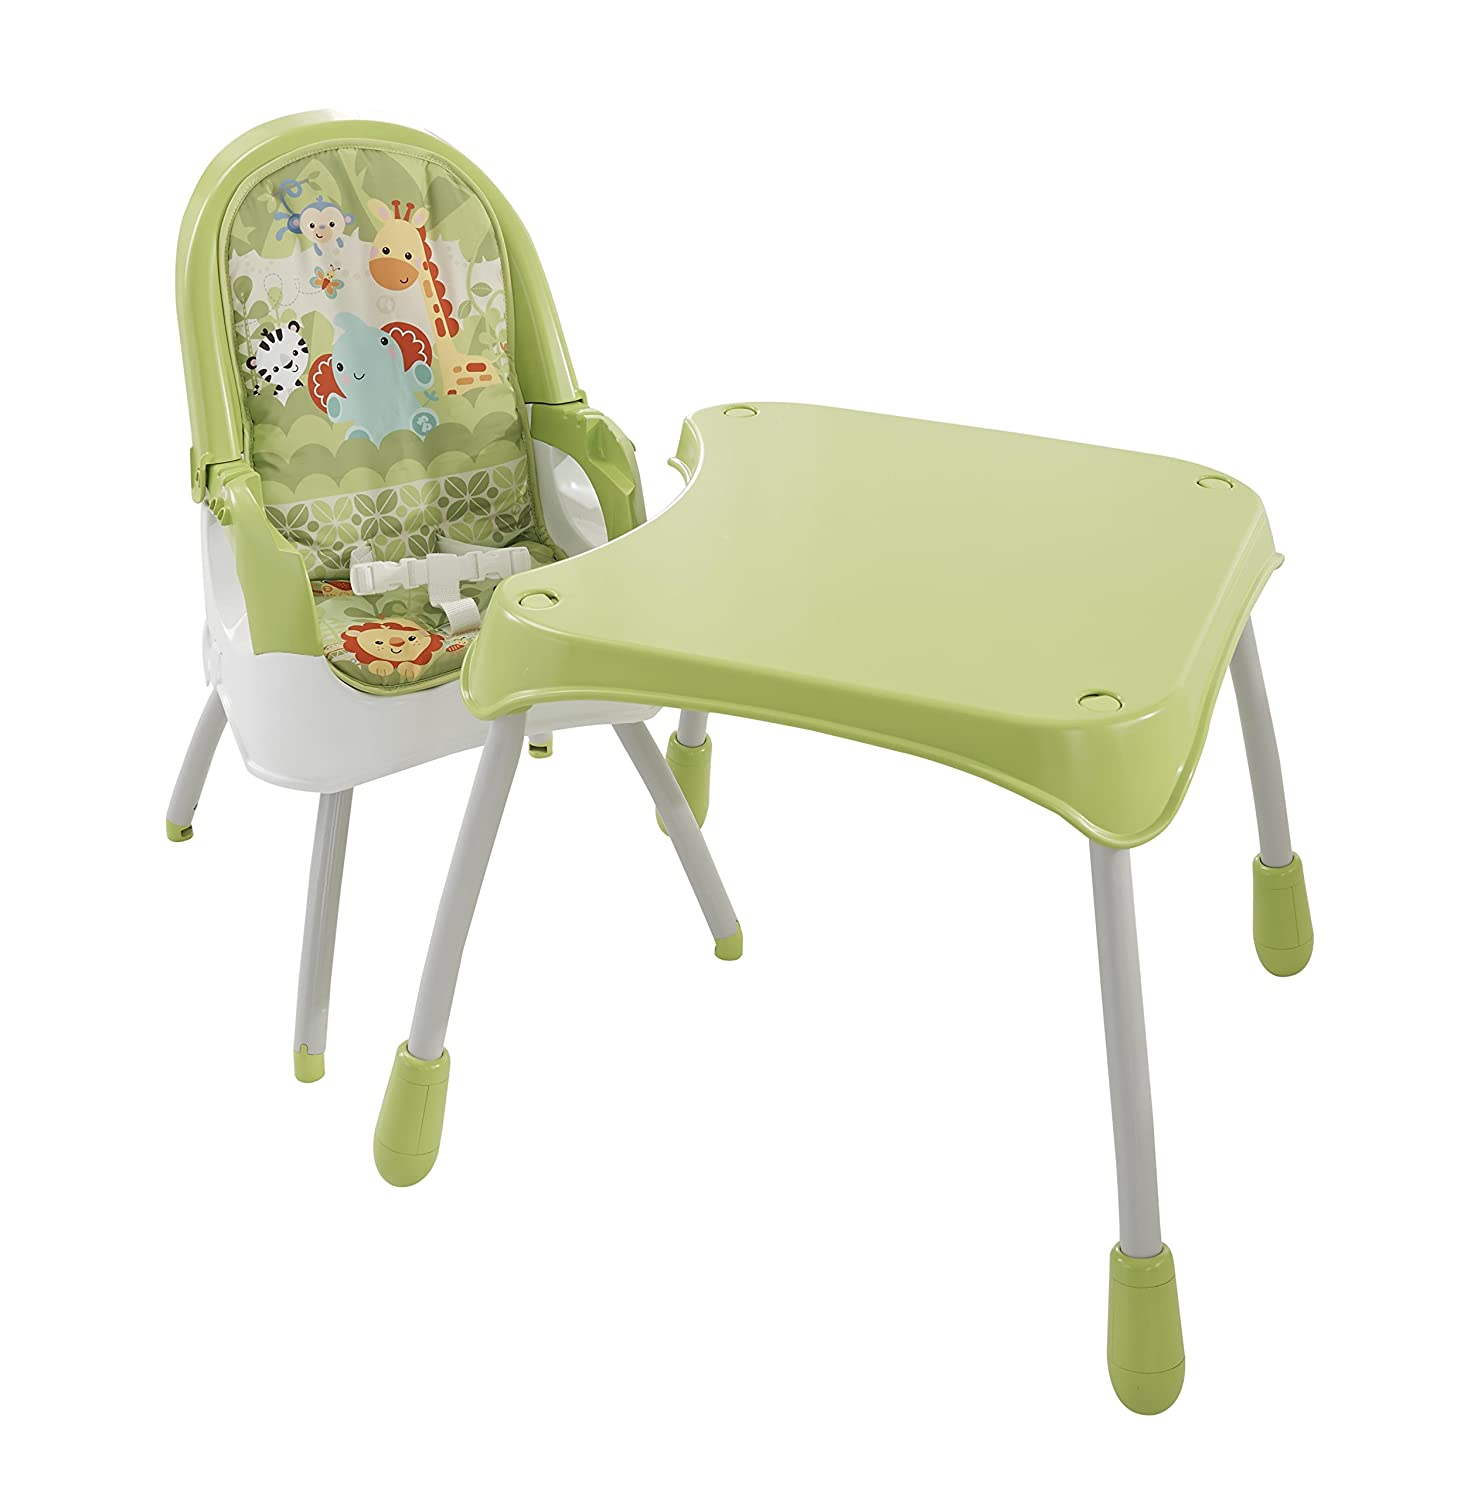 fisher price kids table and chairs poly resin rocking 4 in 1 high chair green best home